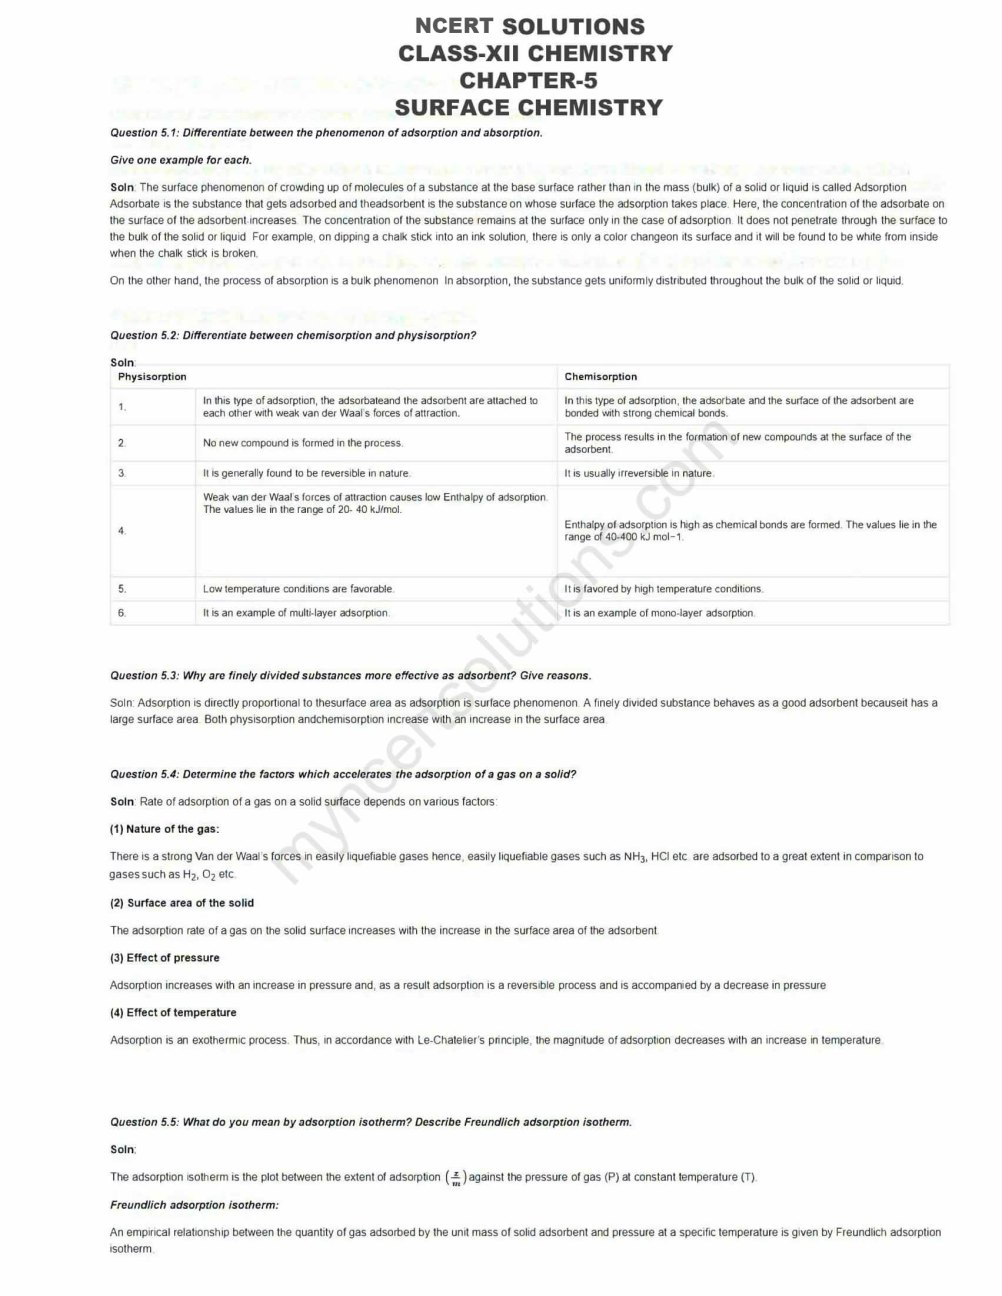 NCERT Solutions For Class 12 Chemistry Chapter 5 - Free PDFs